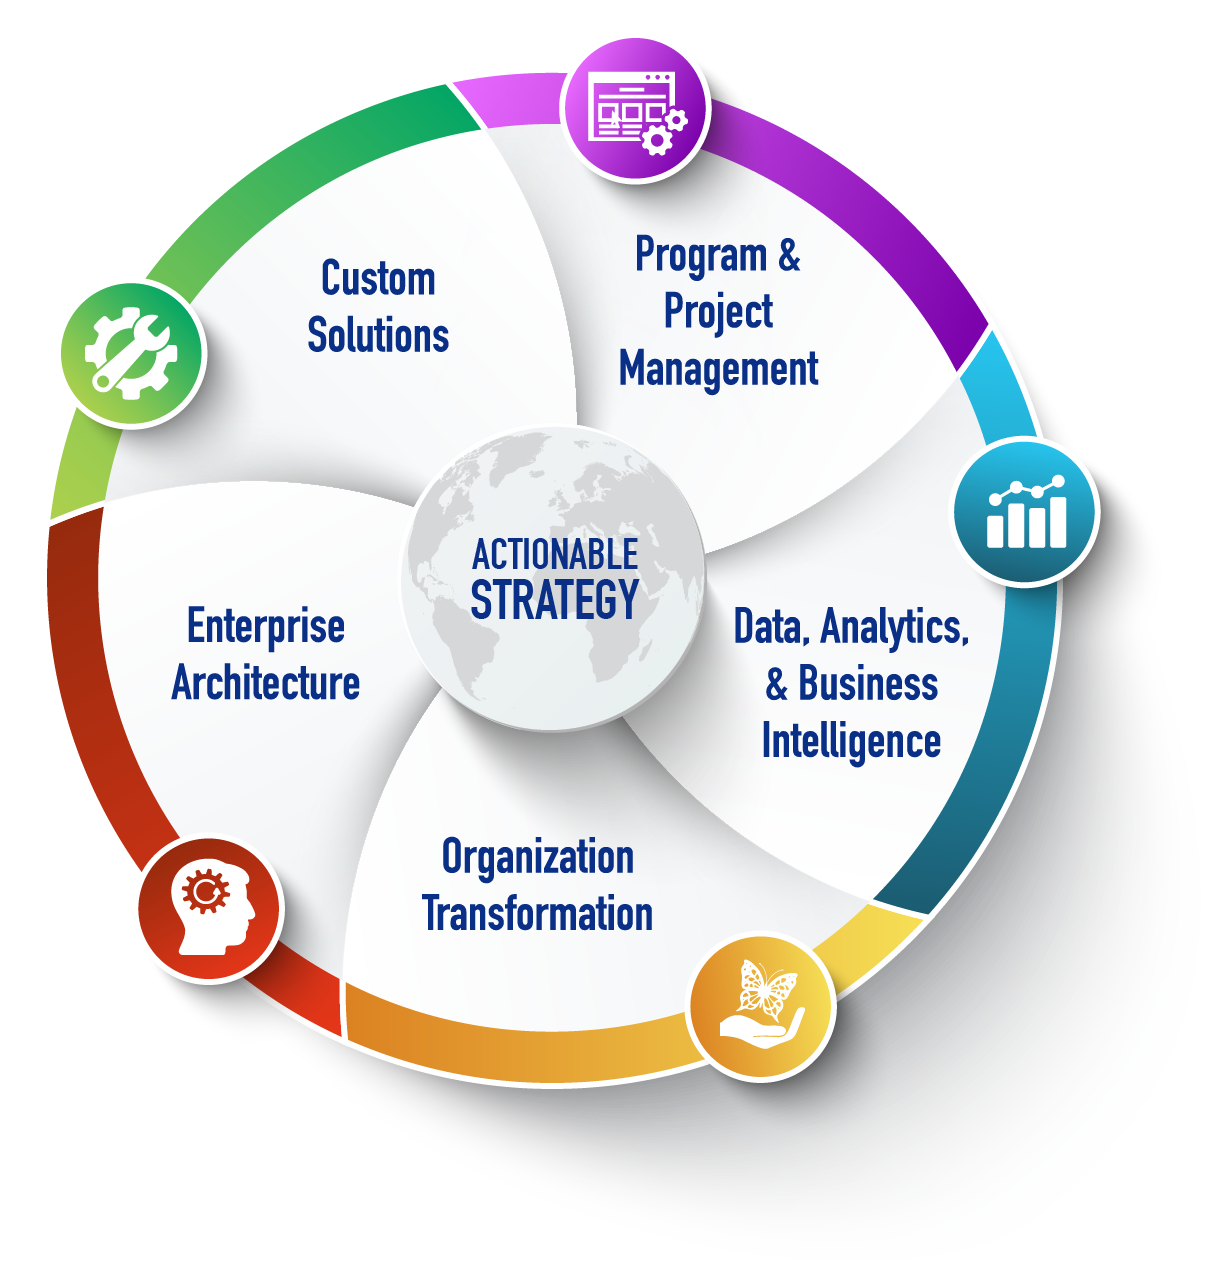 Actionable Strategy